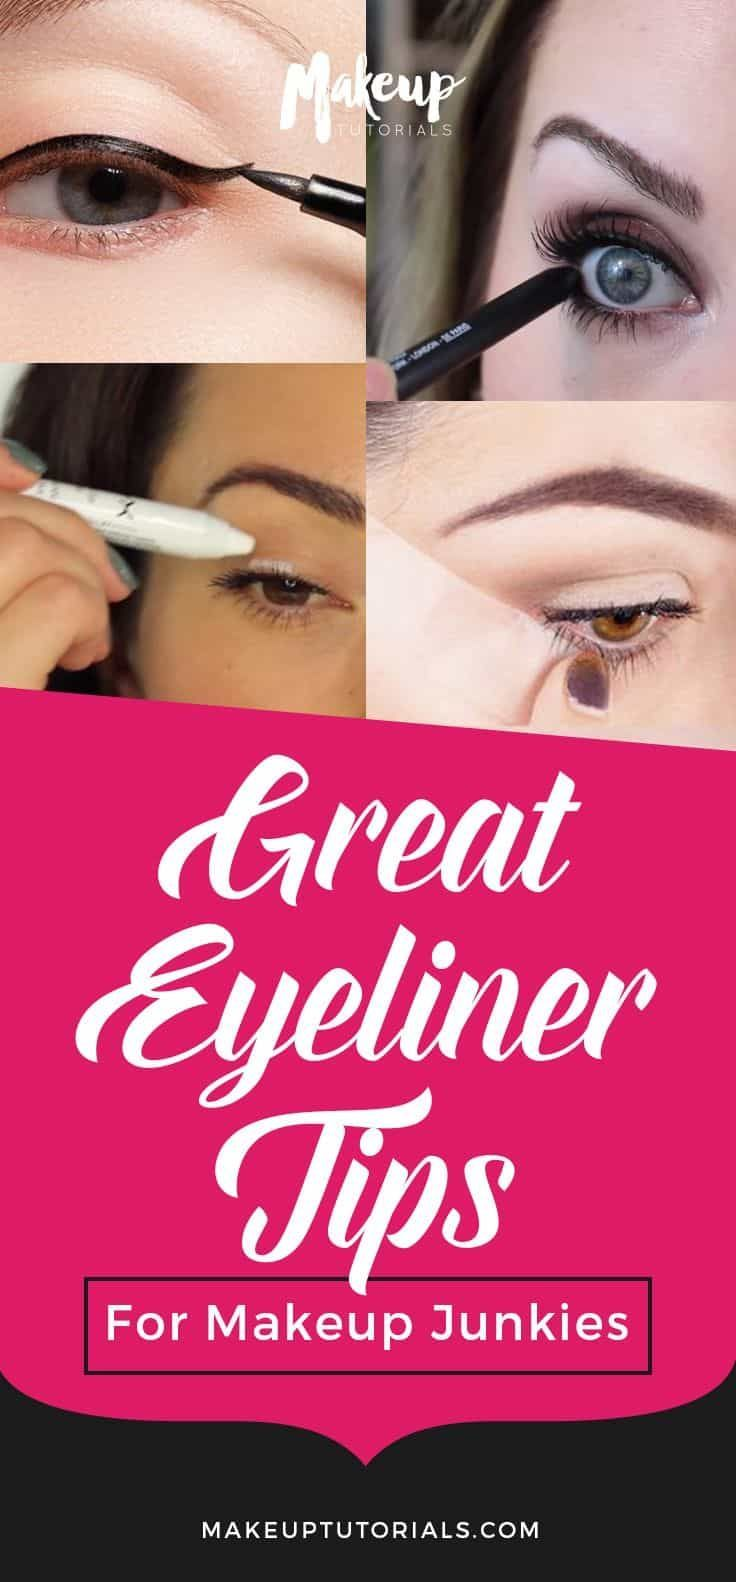 17 Great Eyeliner Hacks for Makeup Junkies | Makeup TutorialsFacebookGoogle+InstagramPinterestTumblrTwitterYouTube